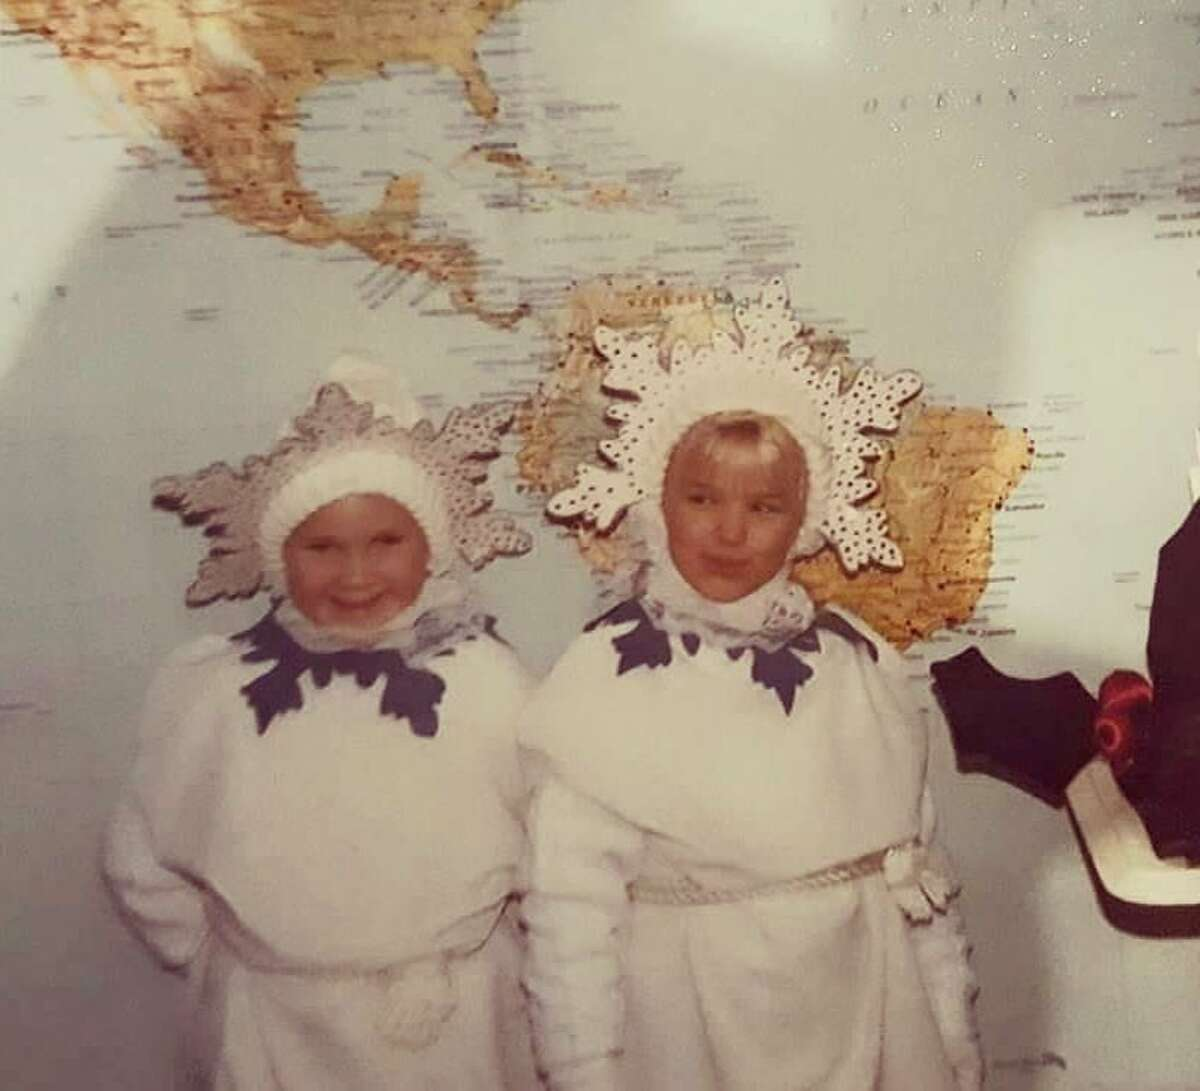 Katie Erickson (left) and Brittany Levandoski dress as snowflakes, circa 1992. (Submitted by Jan Erickson)